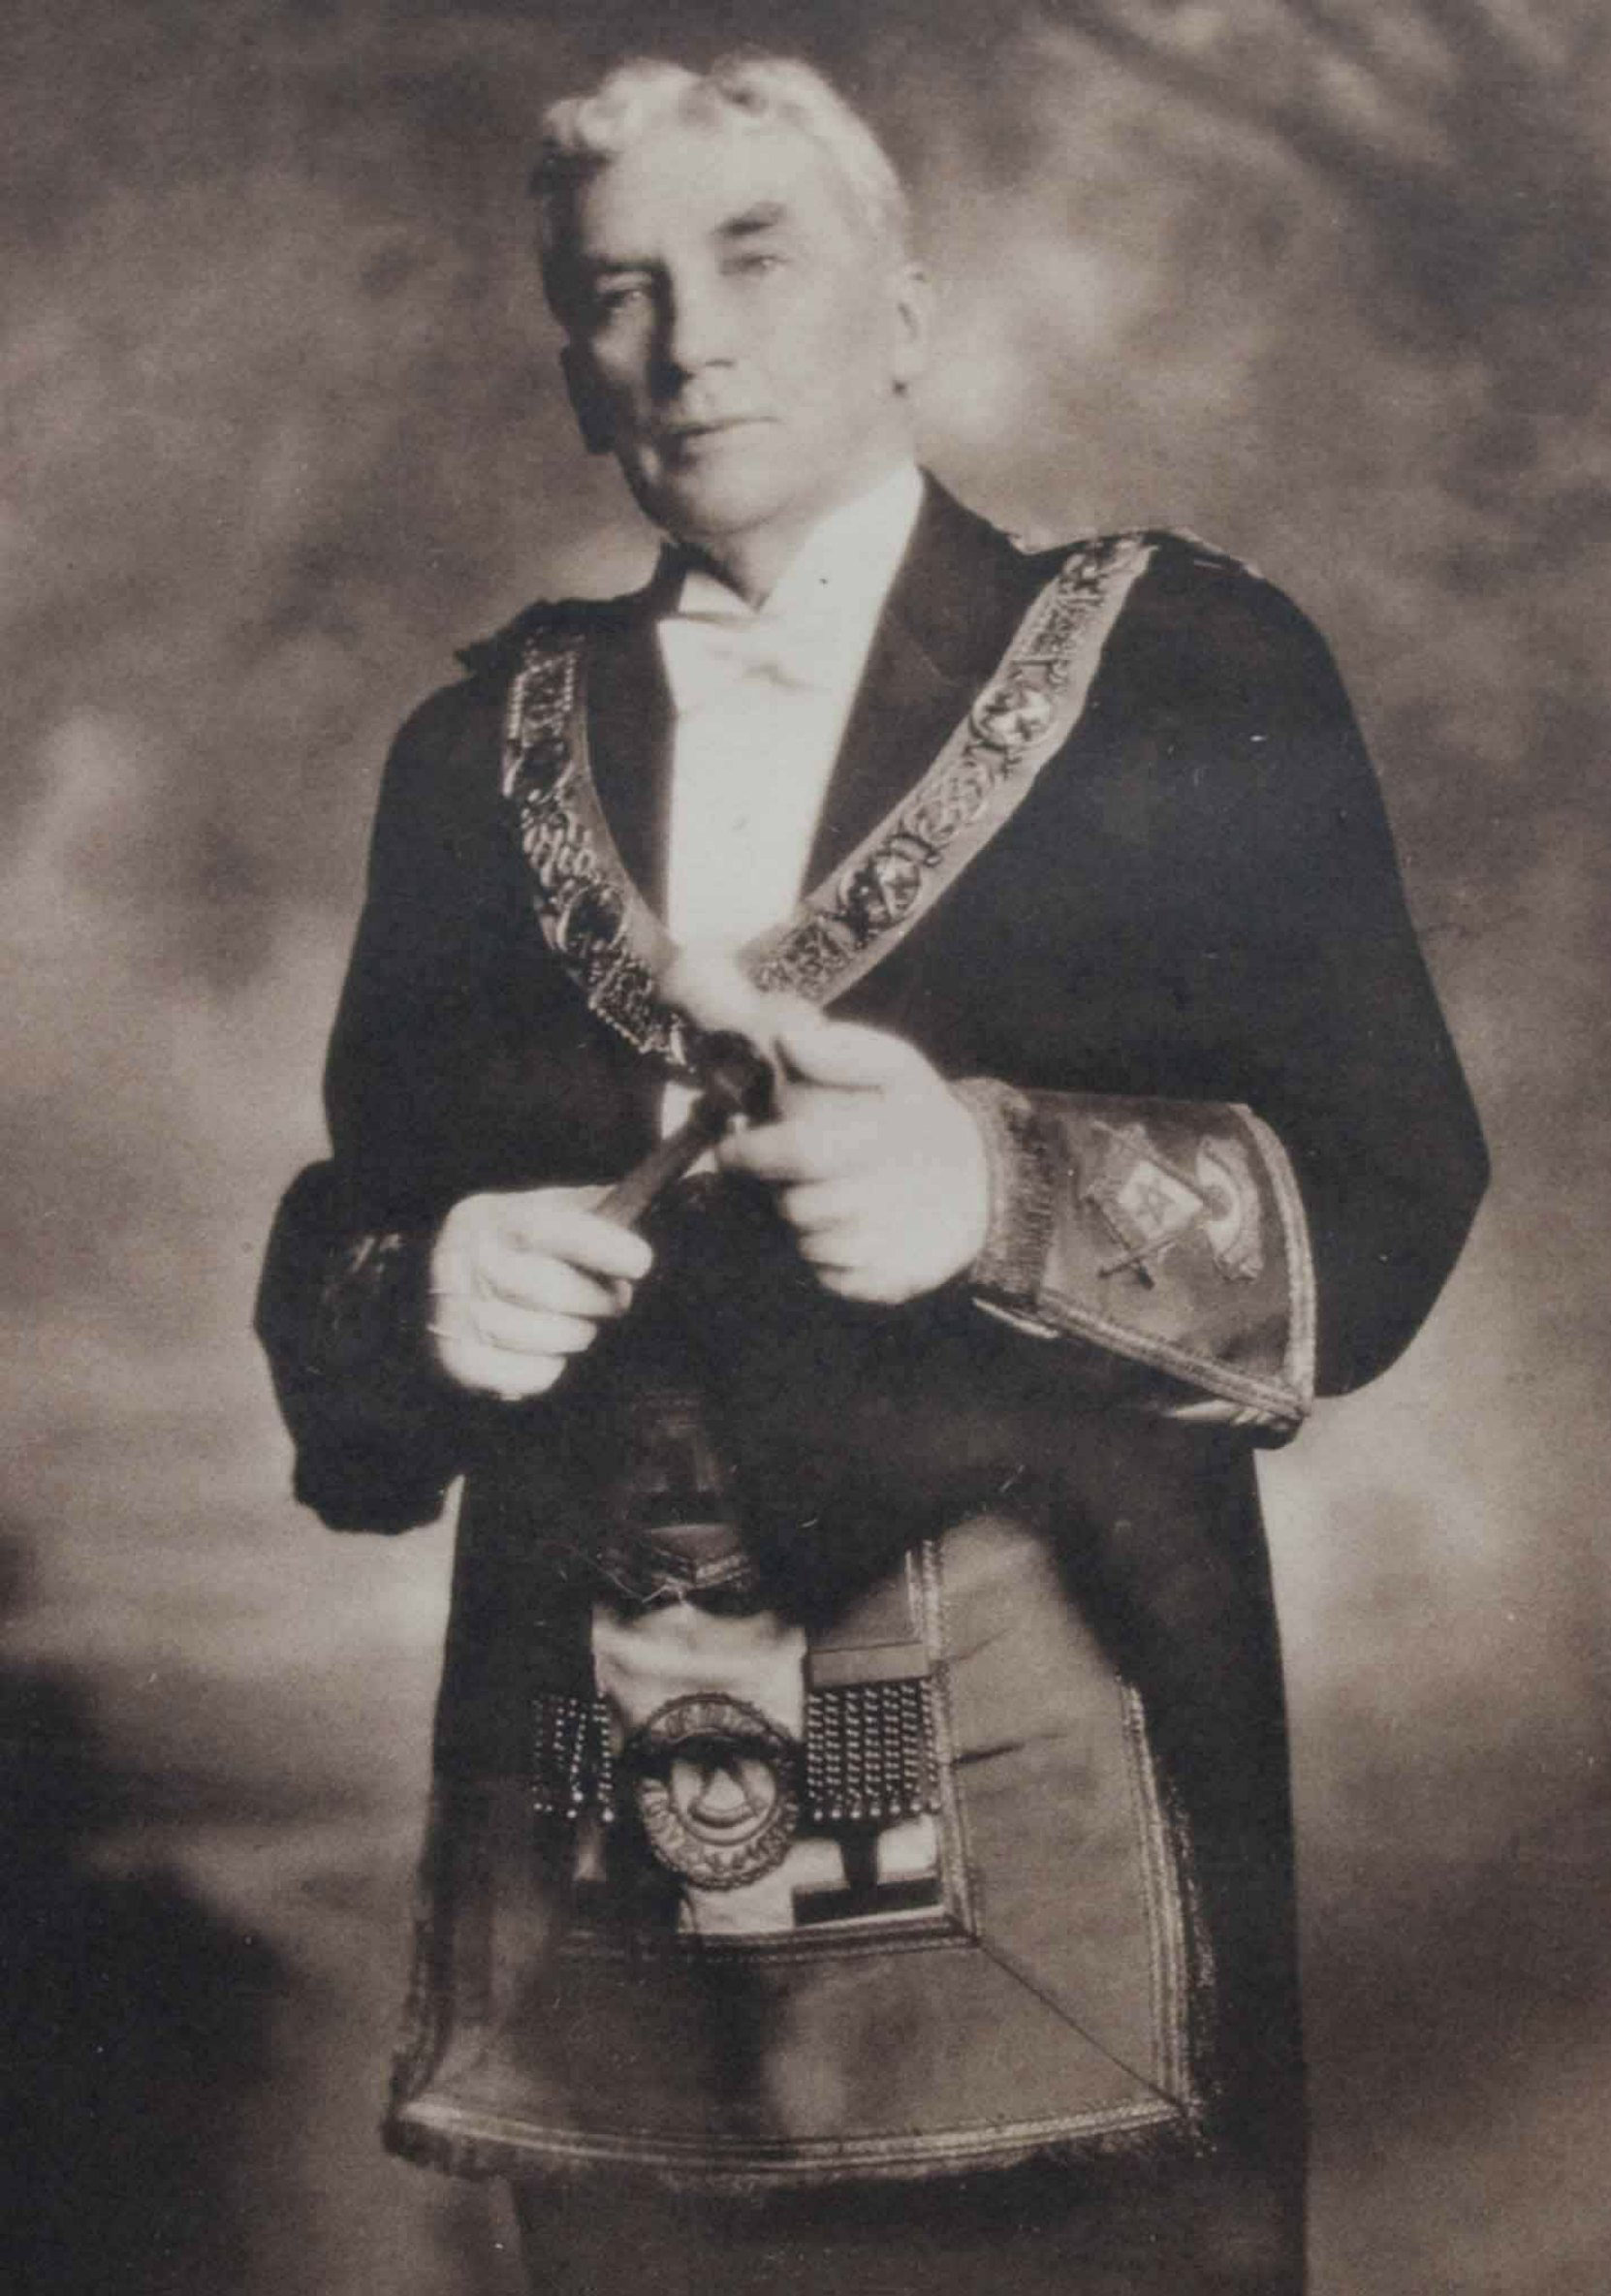 Most Worshipful Brother Donald Edward Kerr as Grand Master of B.C. & Yukon, 1930